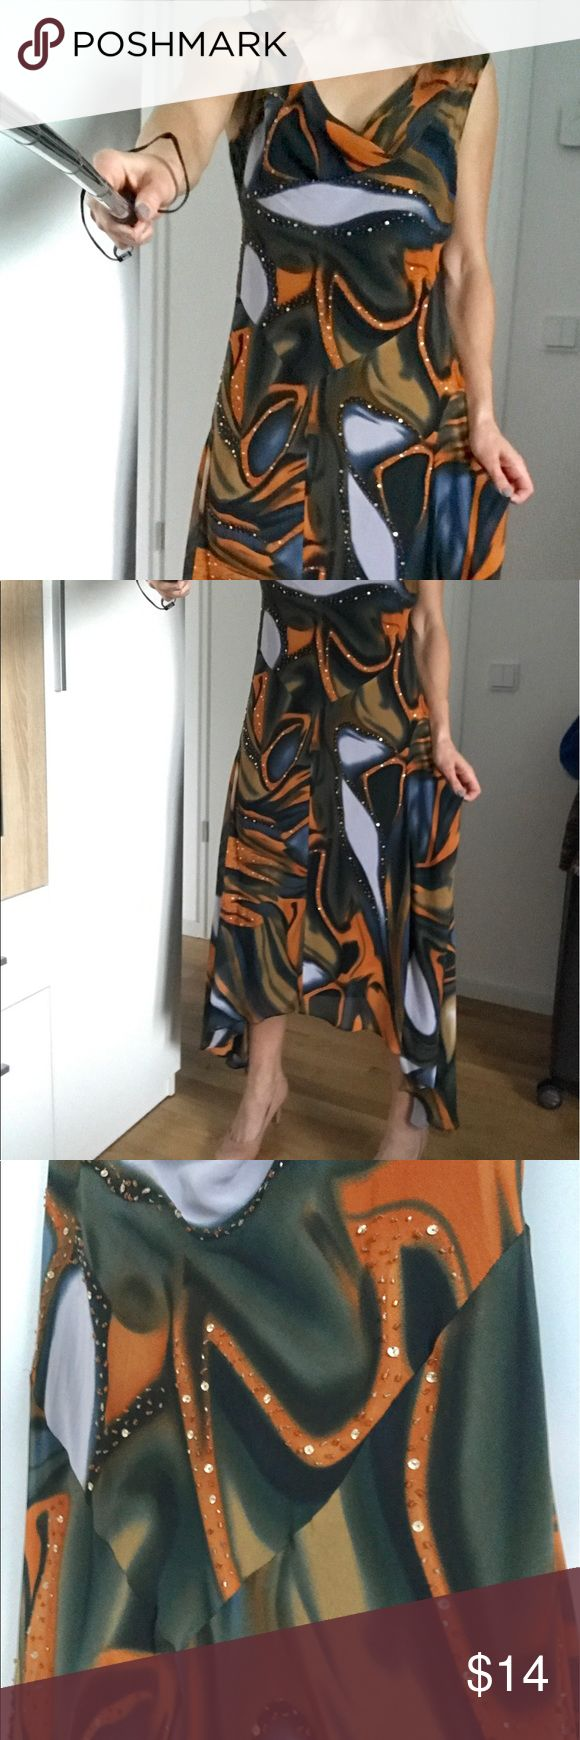 Elegant Multi-colored Evening Dress, fits M & L. This beautifully designed evening dress has a very soft feel and vibrant pattern. It can be worn to a formal event or on a warm summer day. Fits both sizes M & L. Dresses